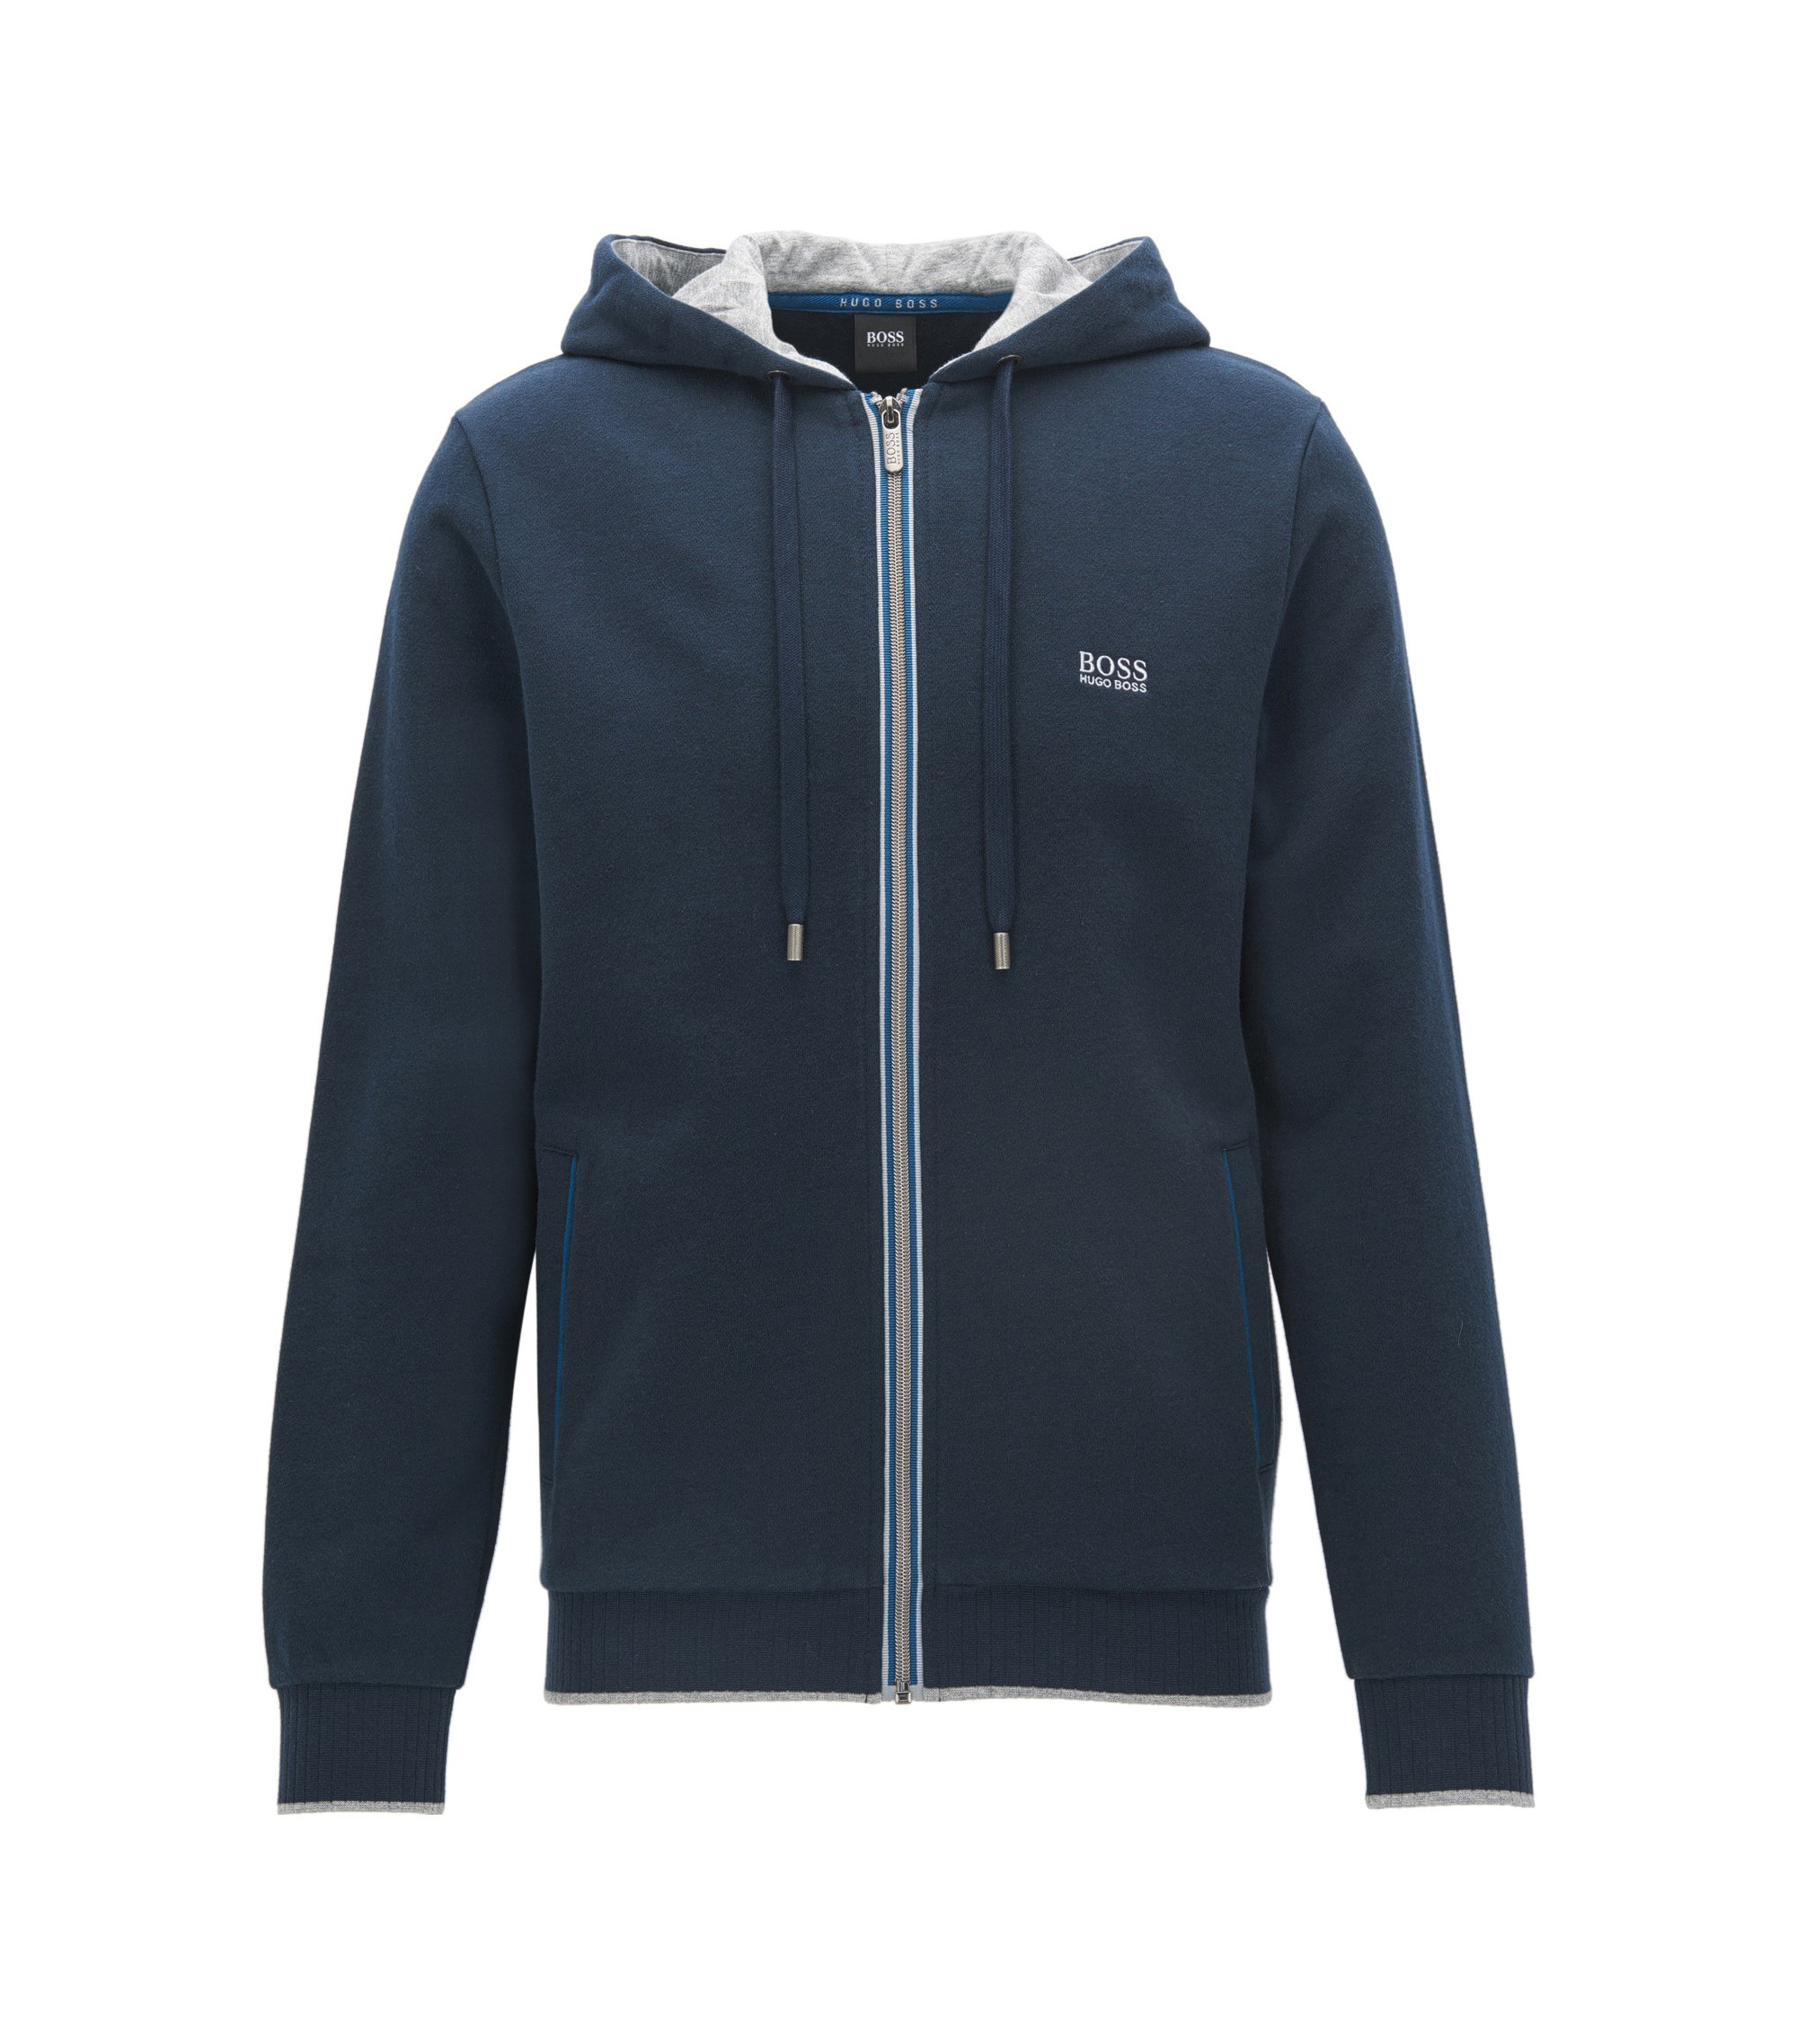 Piped Cotton Blend Jersey Hoodie | Authentic Jacket H, Dark Blue